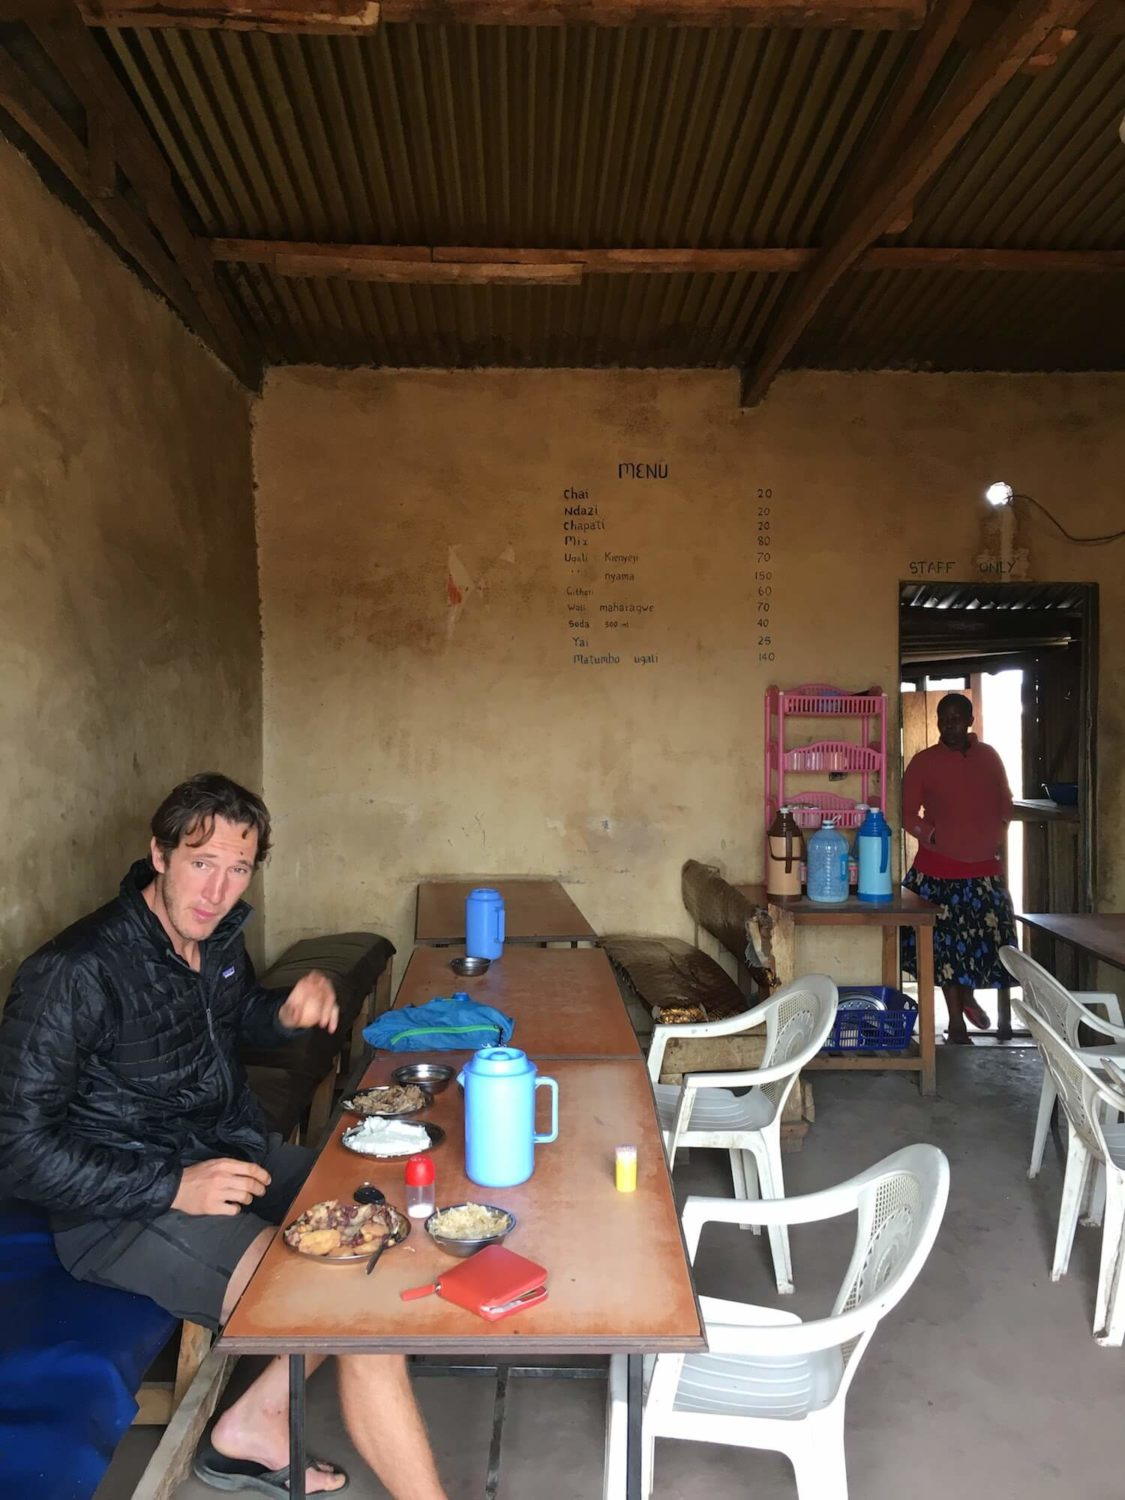 Chris eating a meal in a shack in Kenya